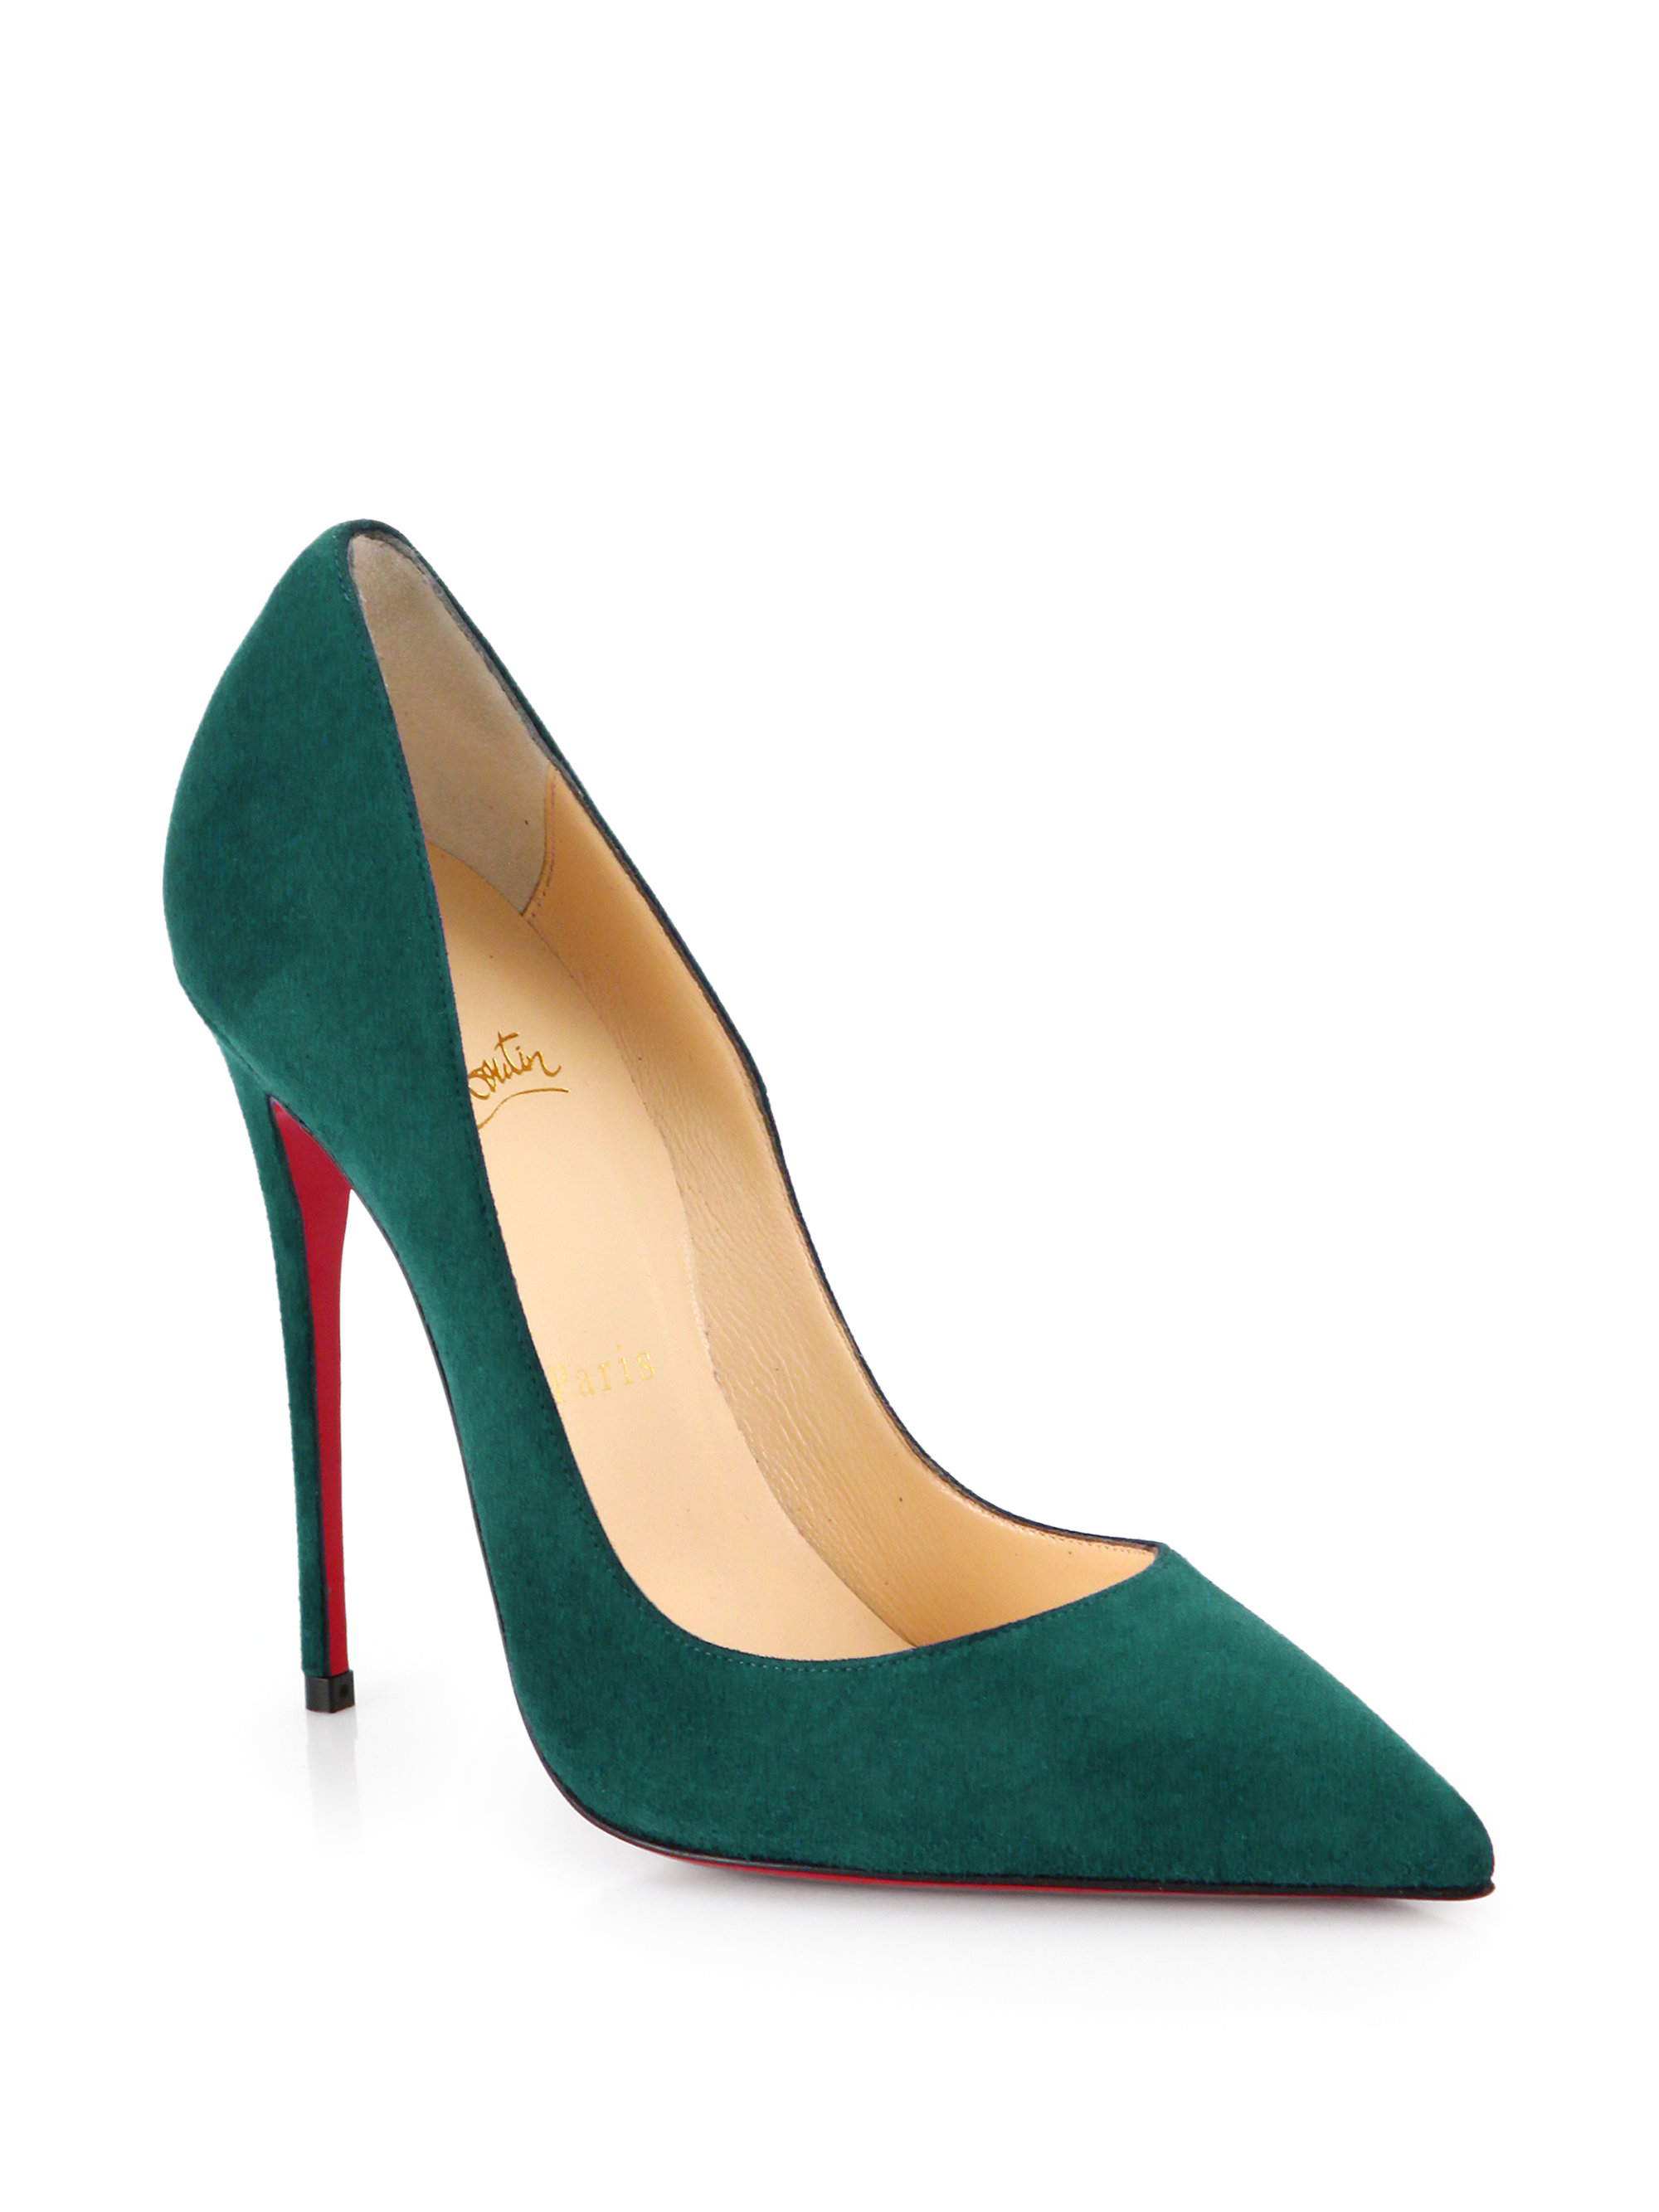 c9574027b2f Lyst - Christian Louboutin So Kate Suede Pumps in Green